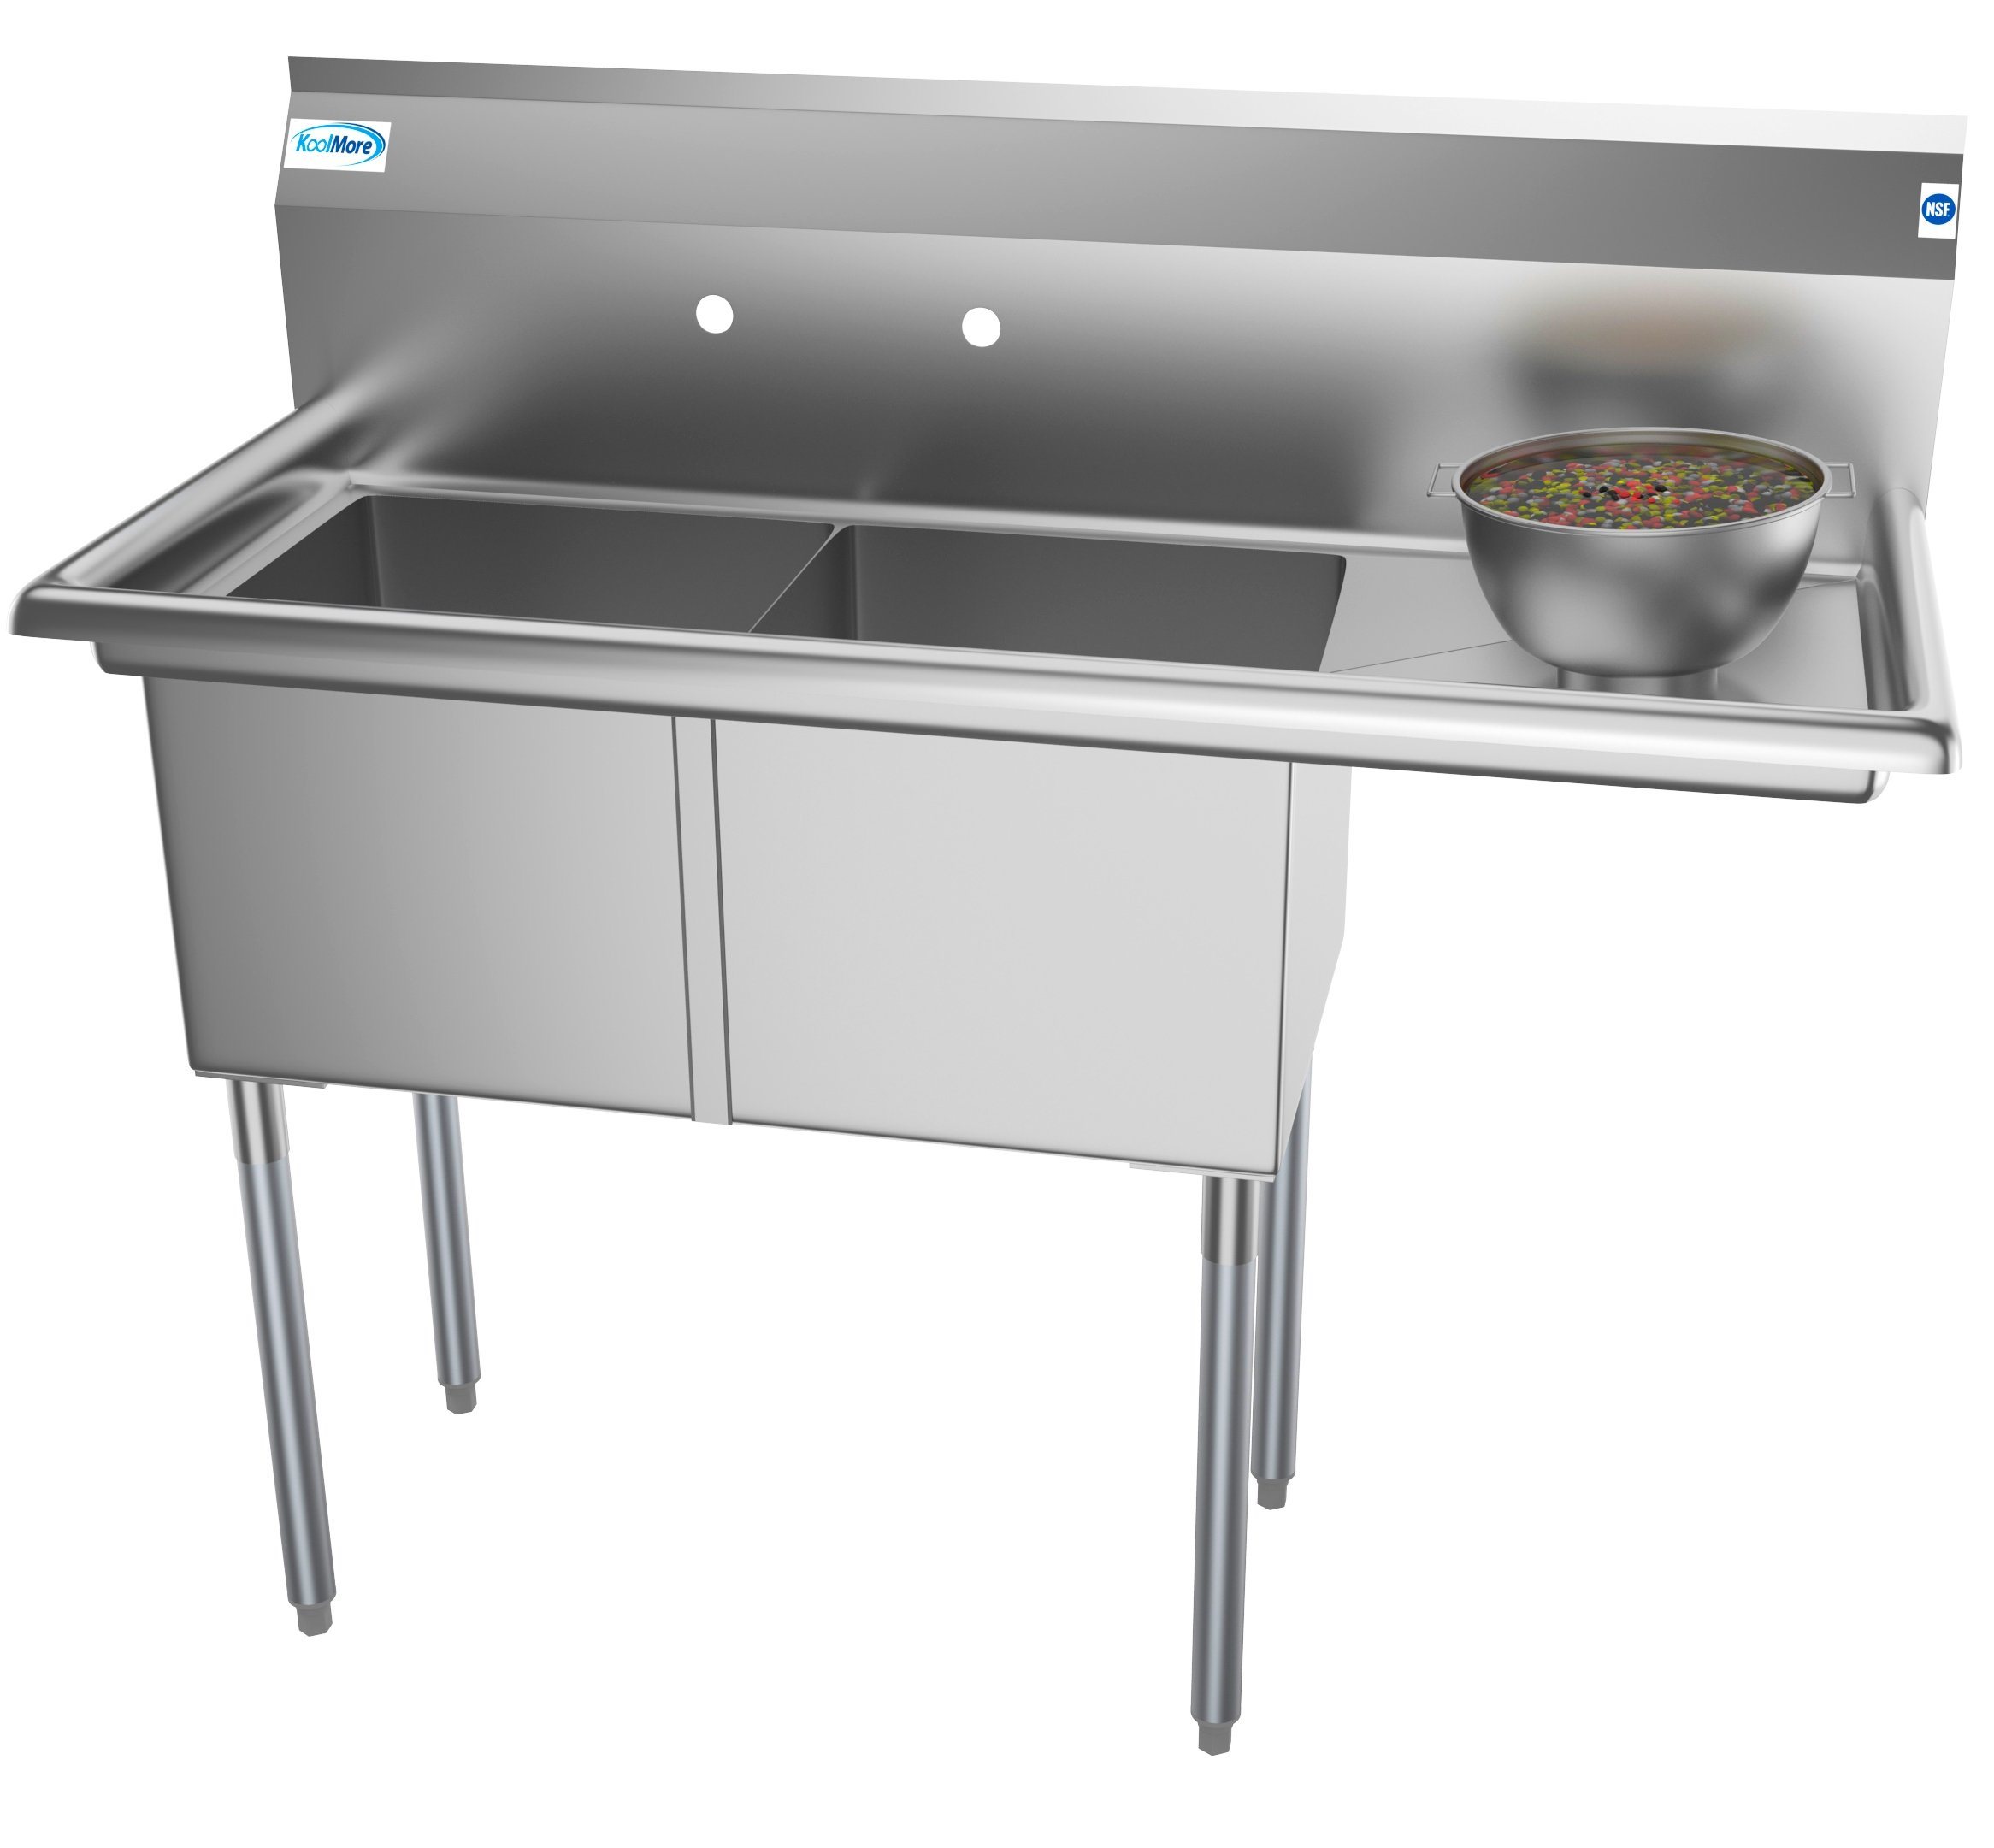 """2 Compartment 48"""" Stainless Steel Commercial Kitchen Prep & Utility Sink with Drainboard - Bowl Size 15"""" x 15"""" x 12"""""""